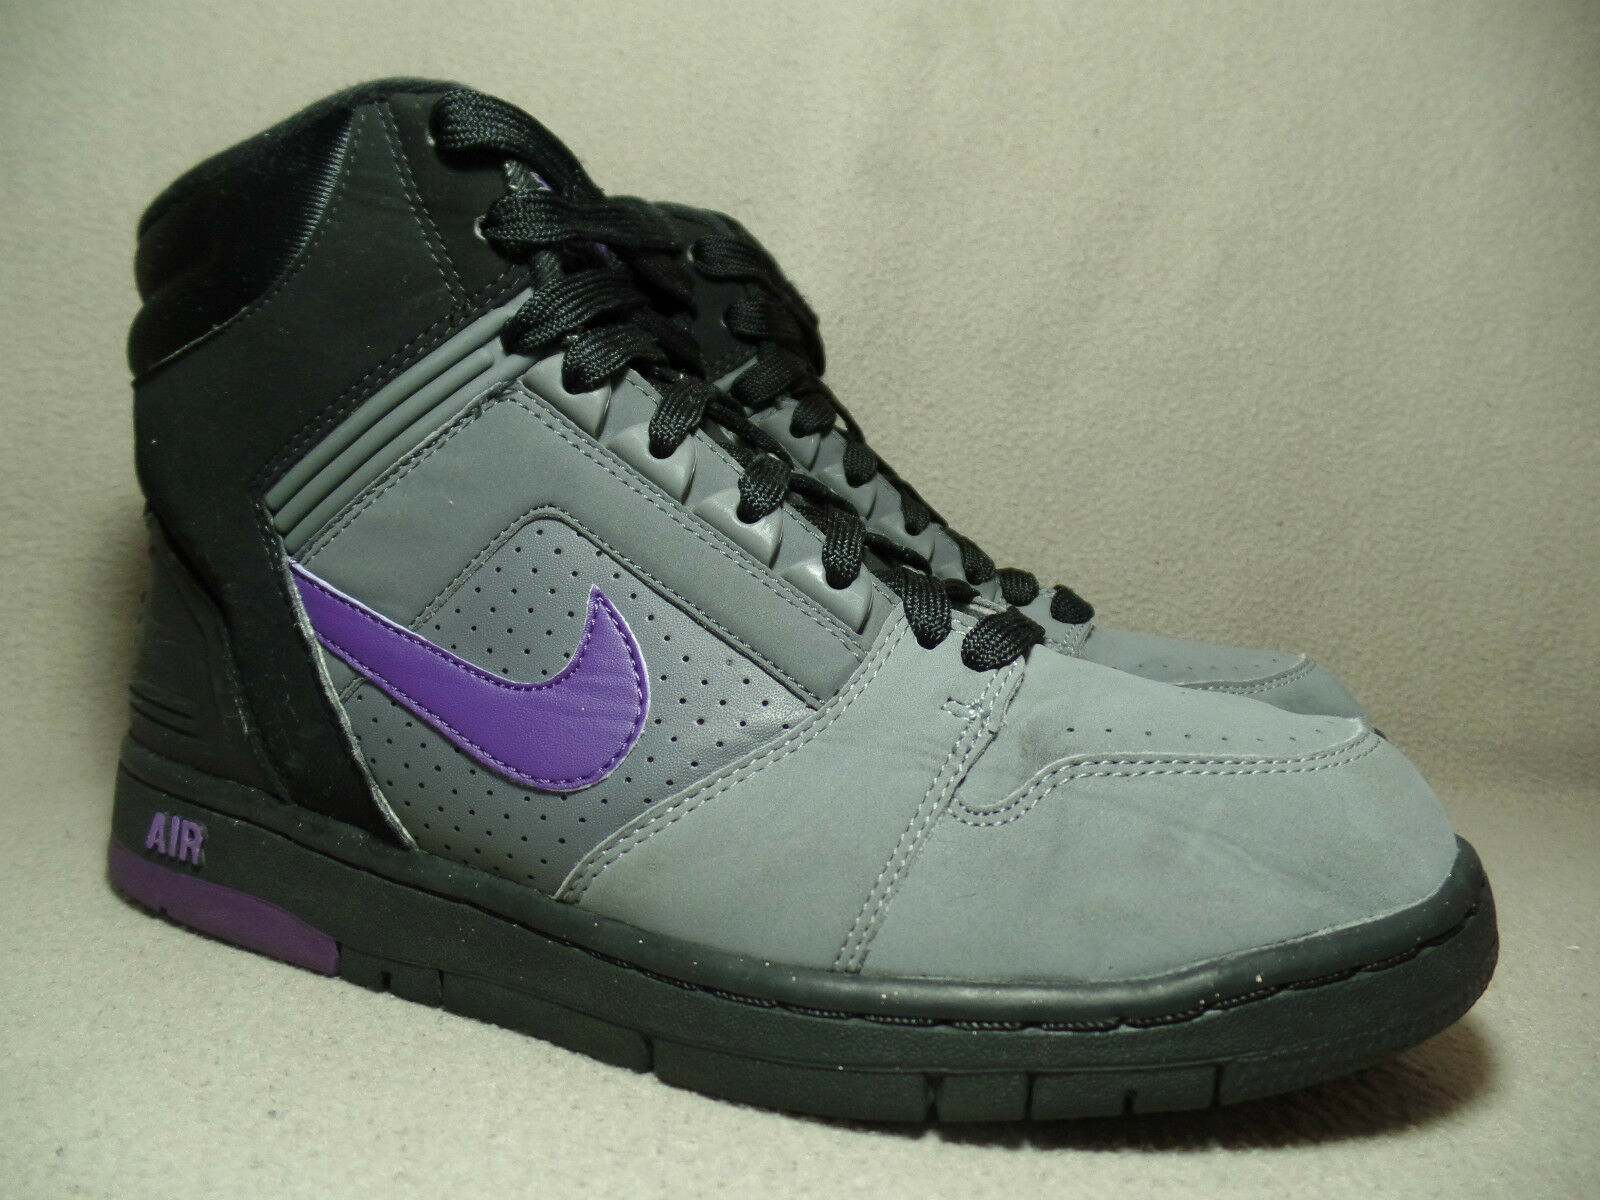 NIKE AIR FORCE 2 RETRO Court Purple/Medium Grey/Black Trainers / Wild casual shoes